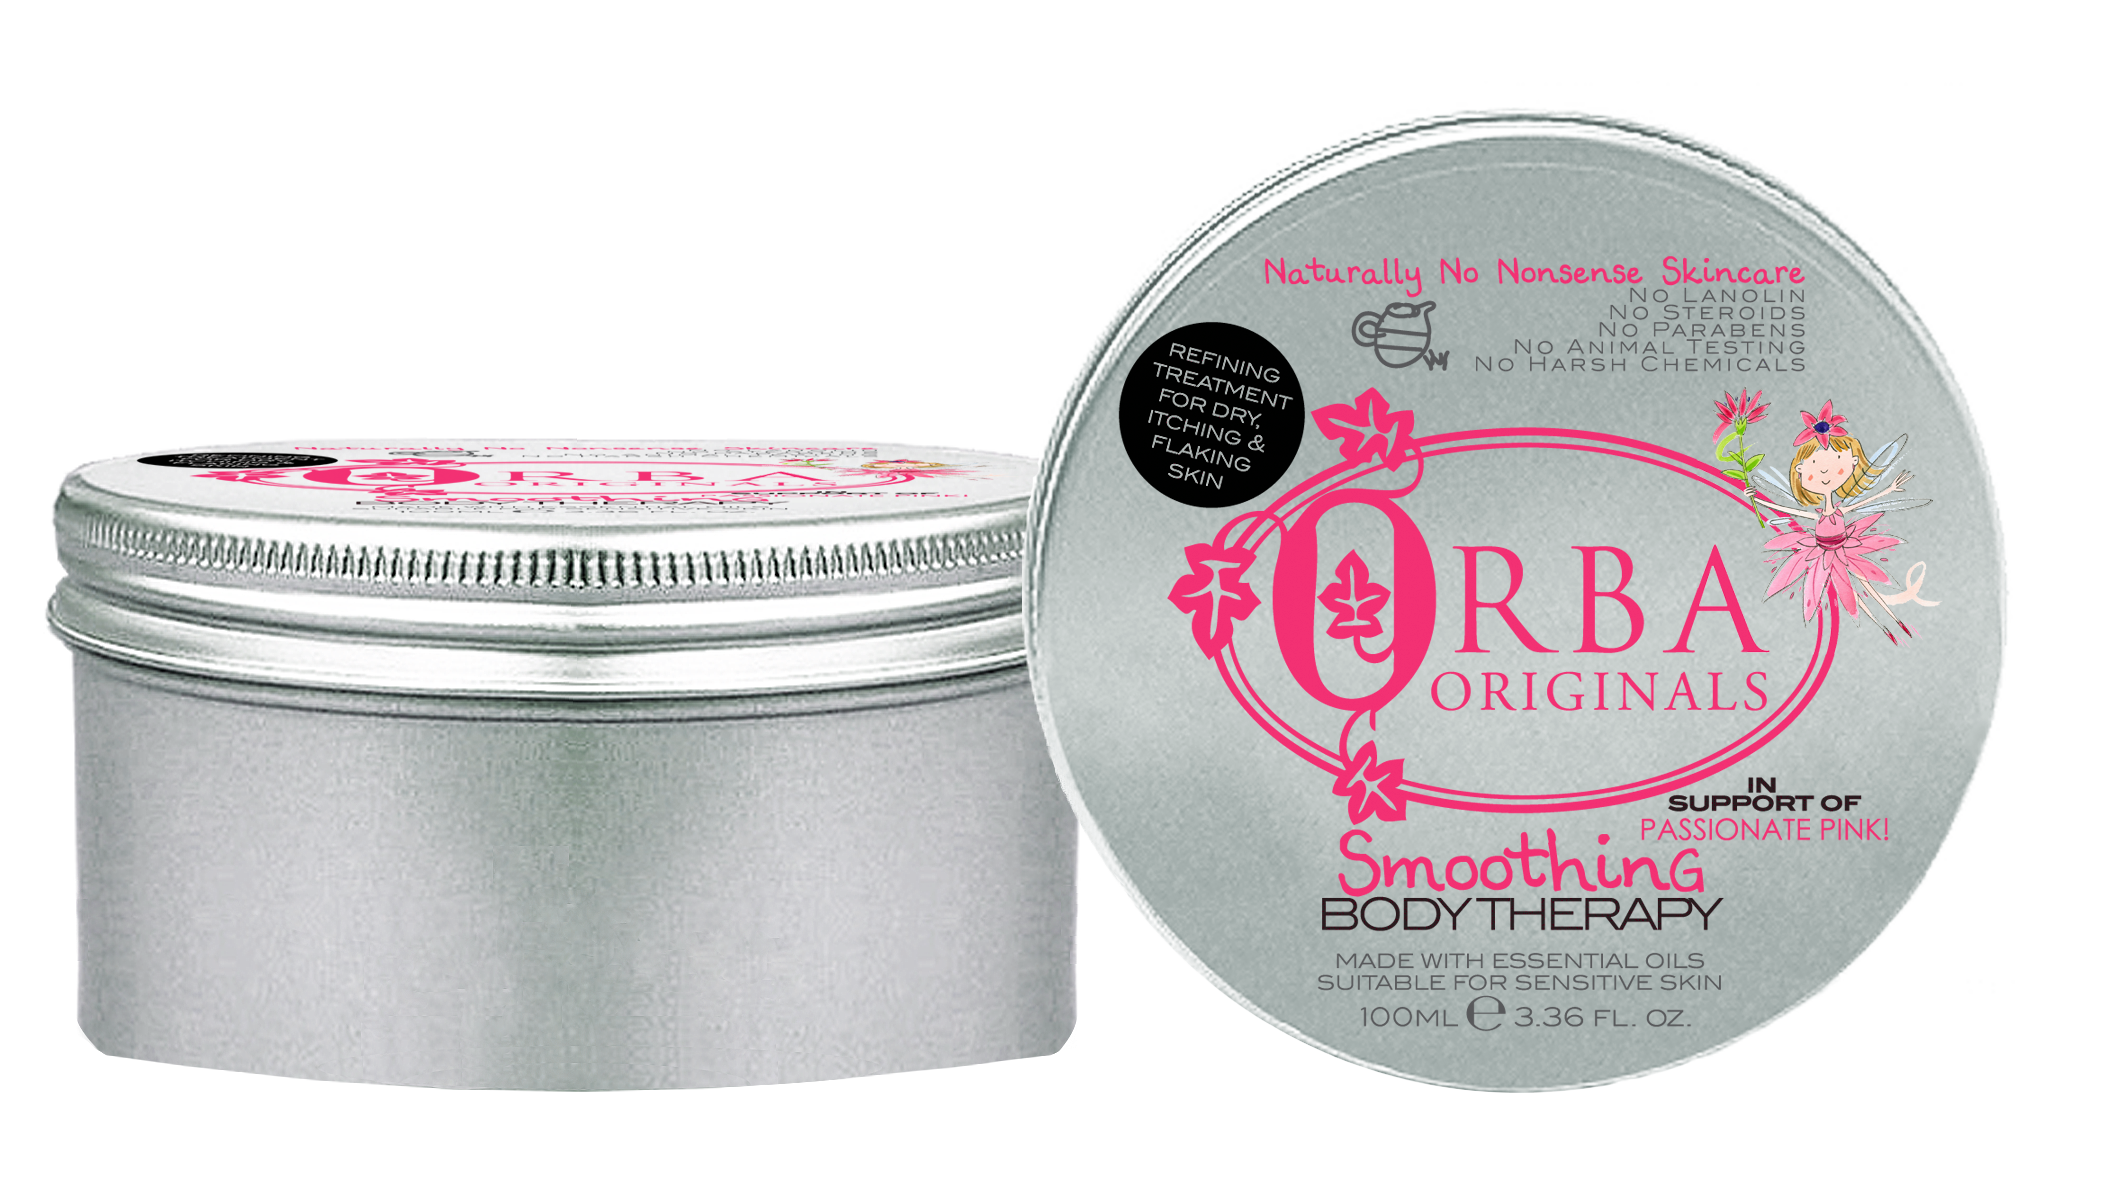 Passionate Pink Smoothing Body Therapy